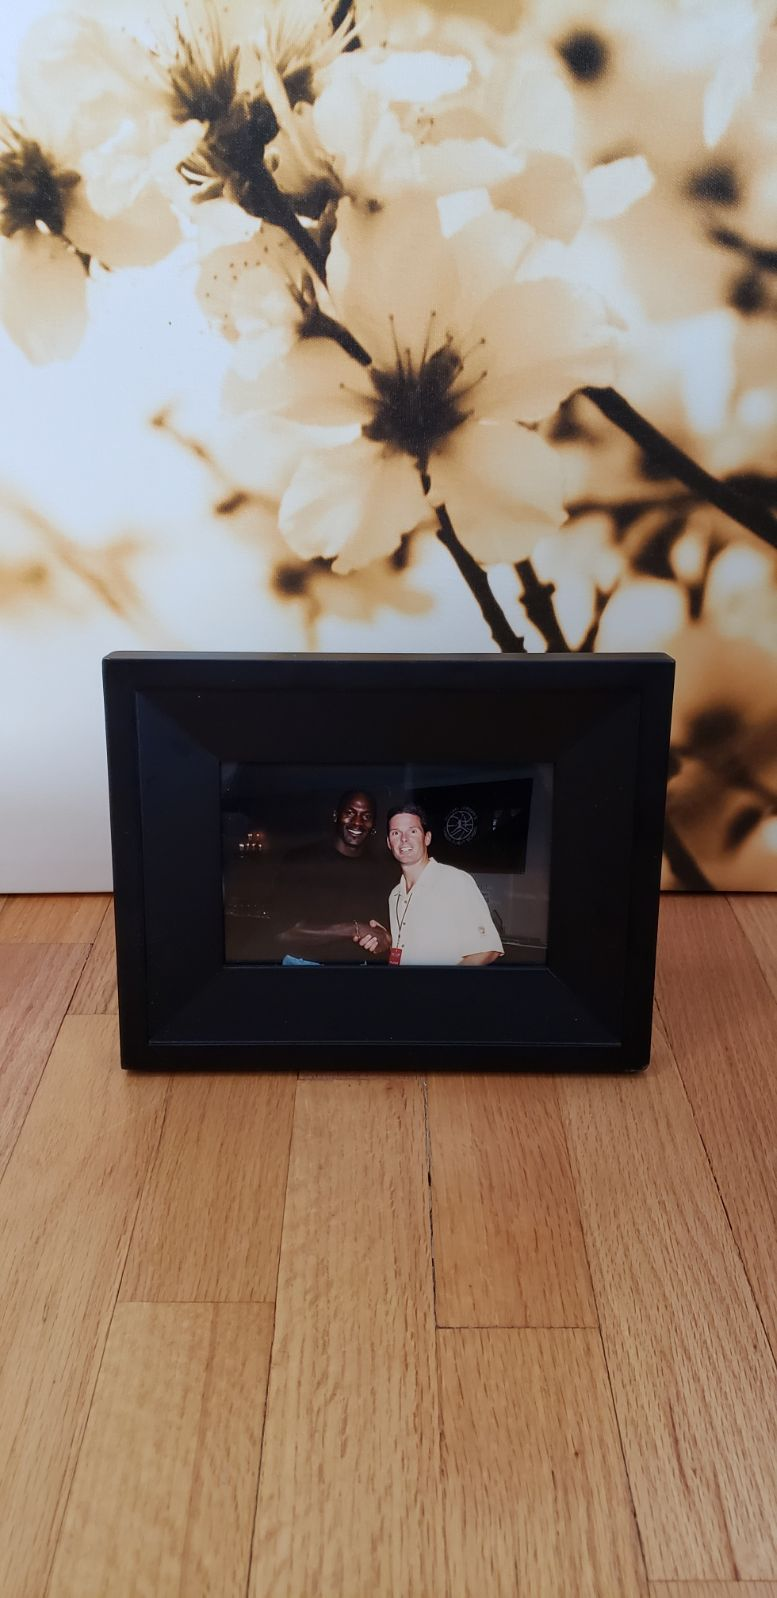 Frame with picture of Michael Jord